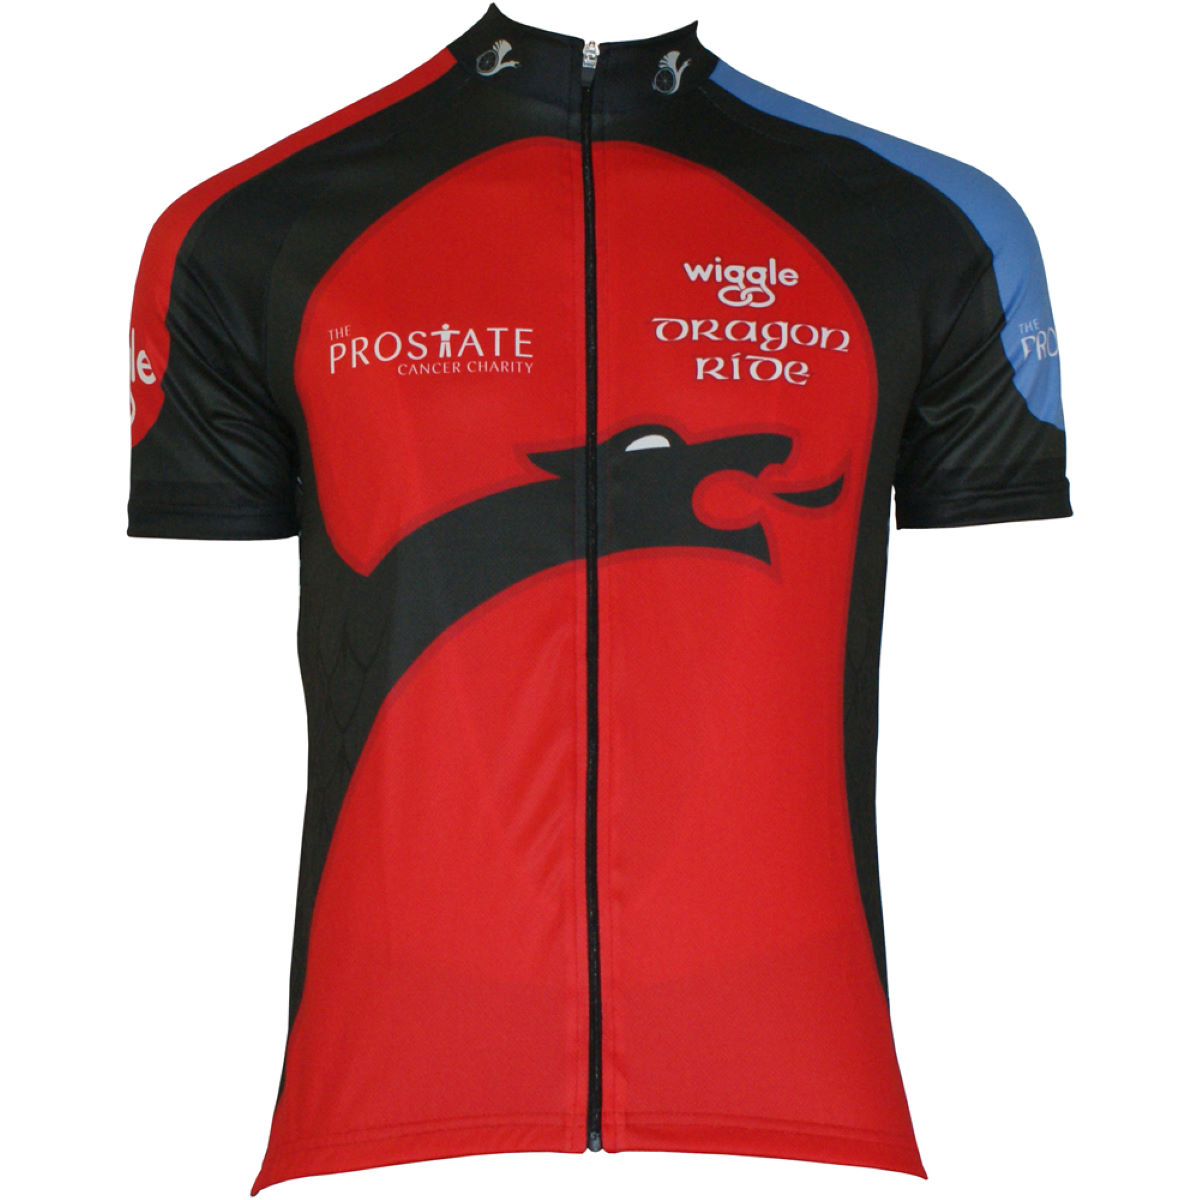 Wiggle Dragon Ride Short Sleeve Cycling Jersey 2011